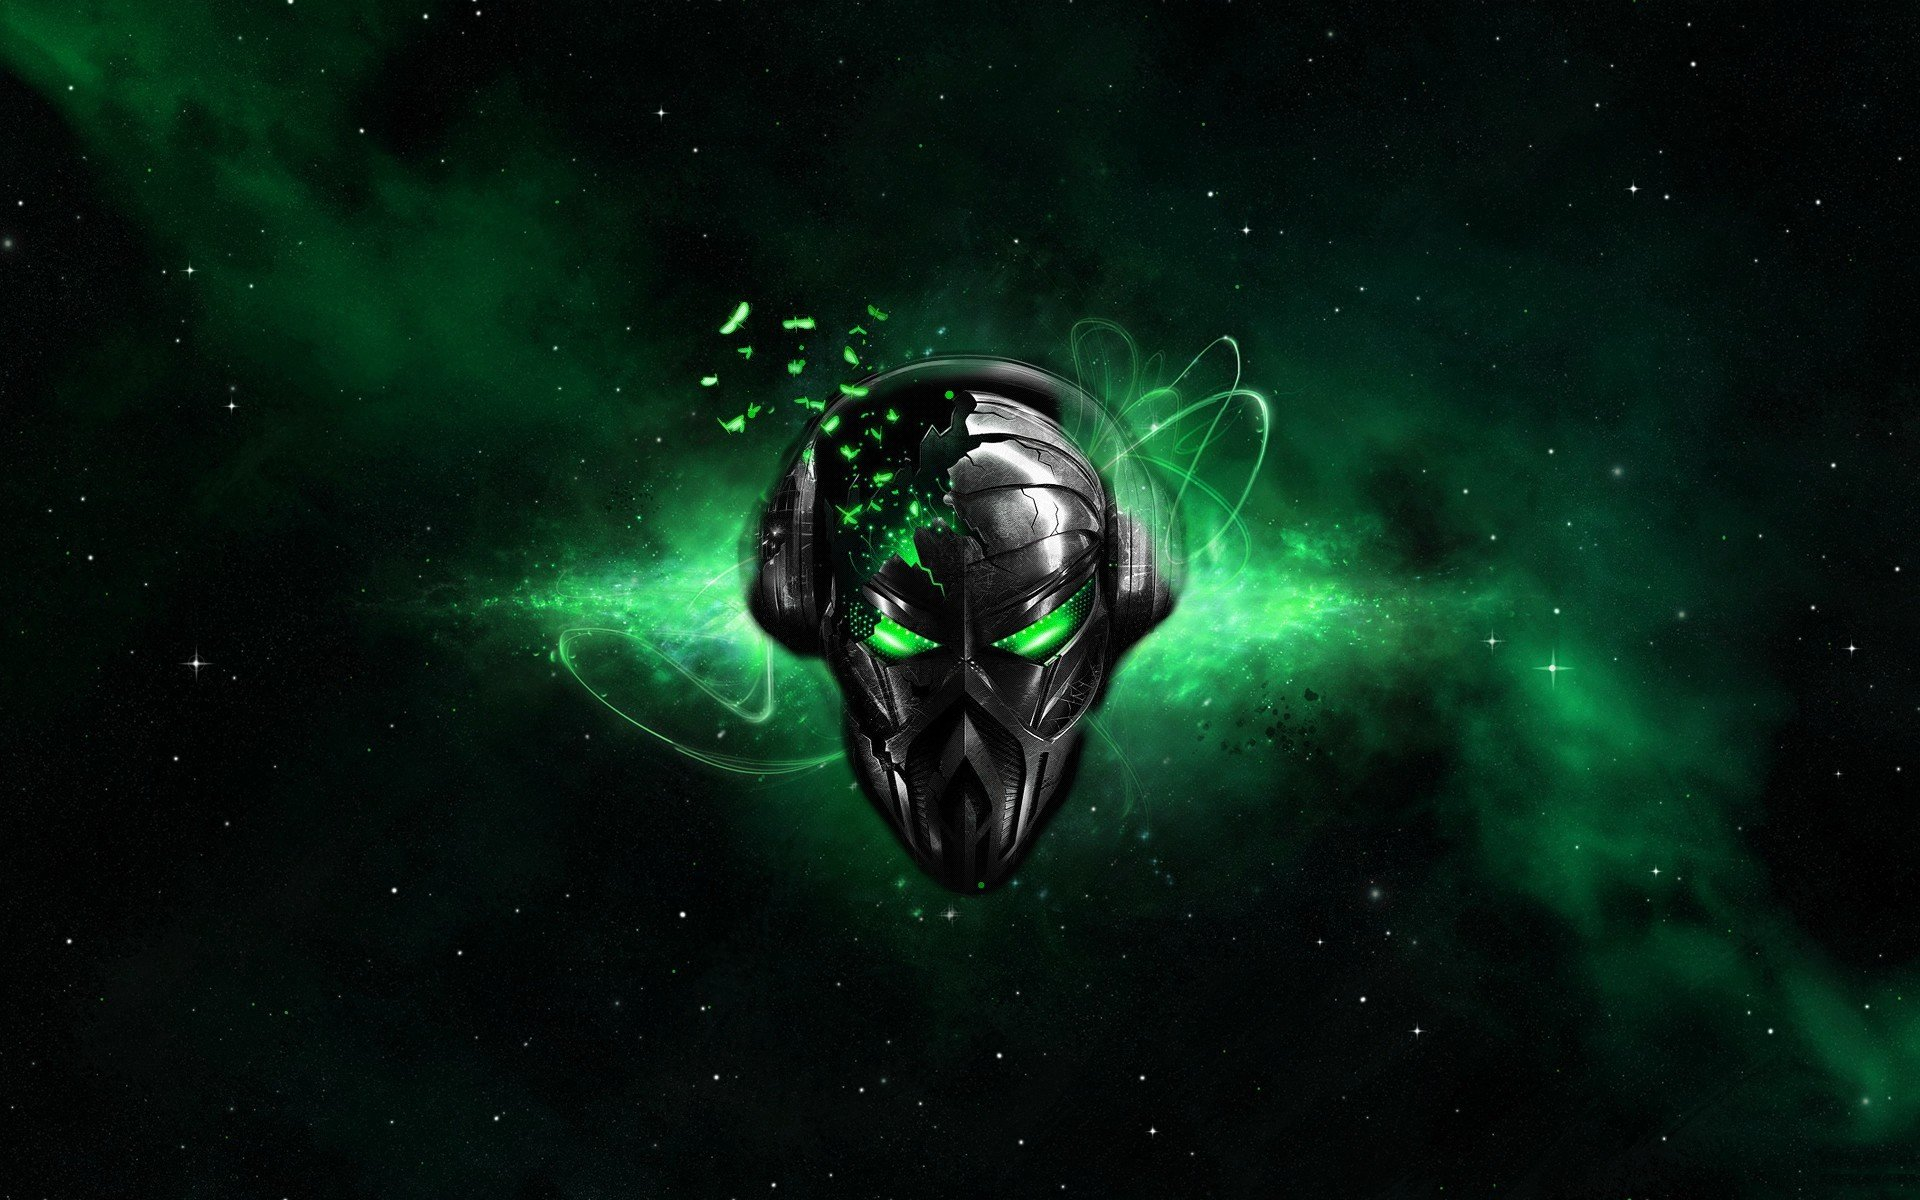 Alienware Desktop Backgrounds   Alienware Fx Themes 1920x1200